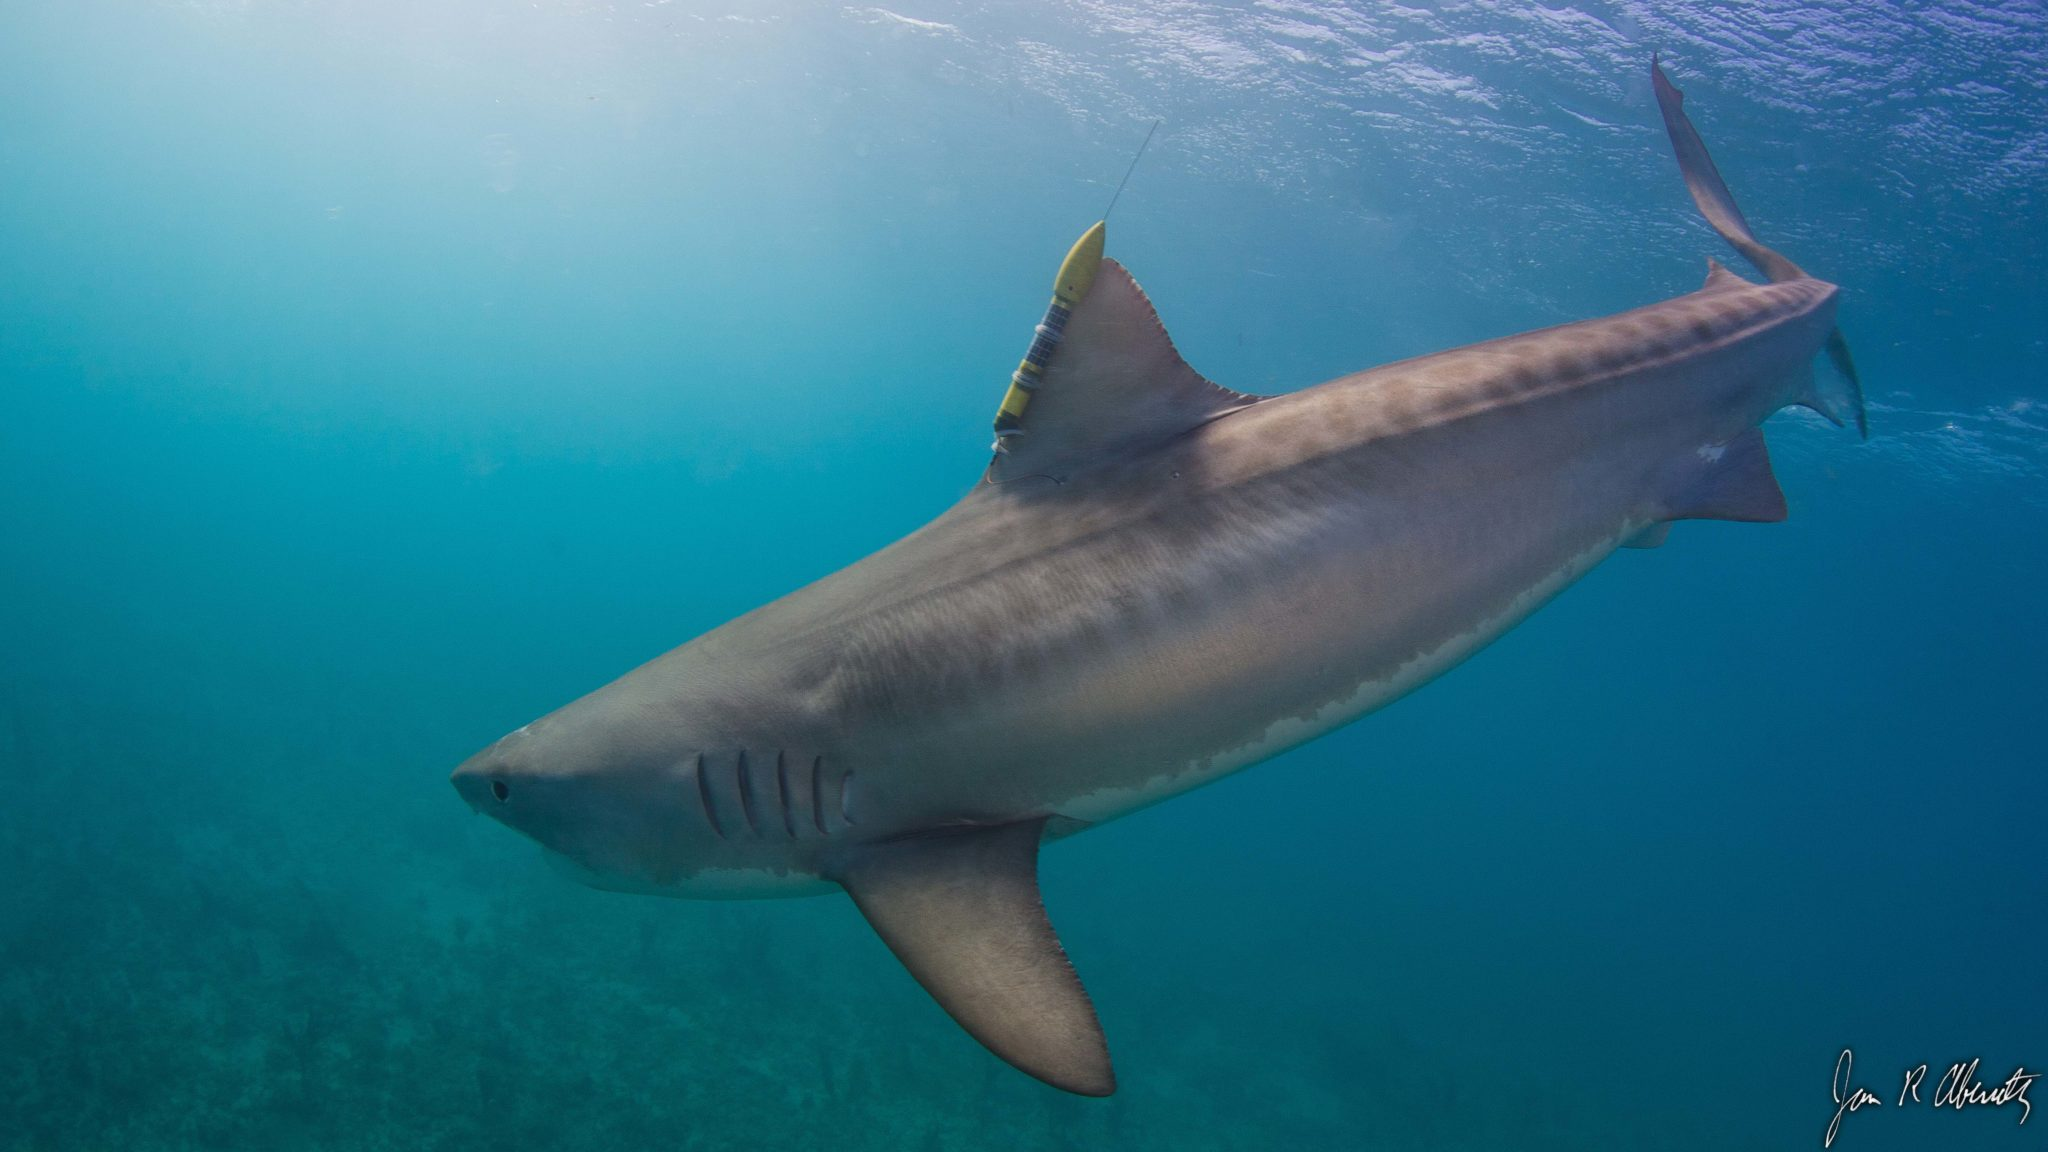 Swimming Wallpaper Quotes 25 Tiger Shark Pictures And Hd Wallpapers